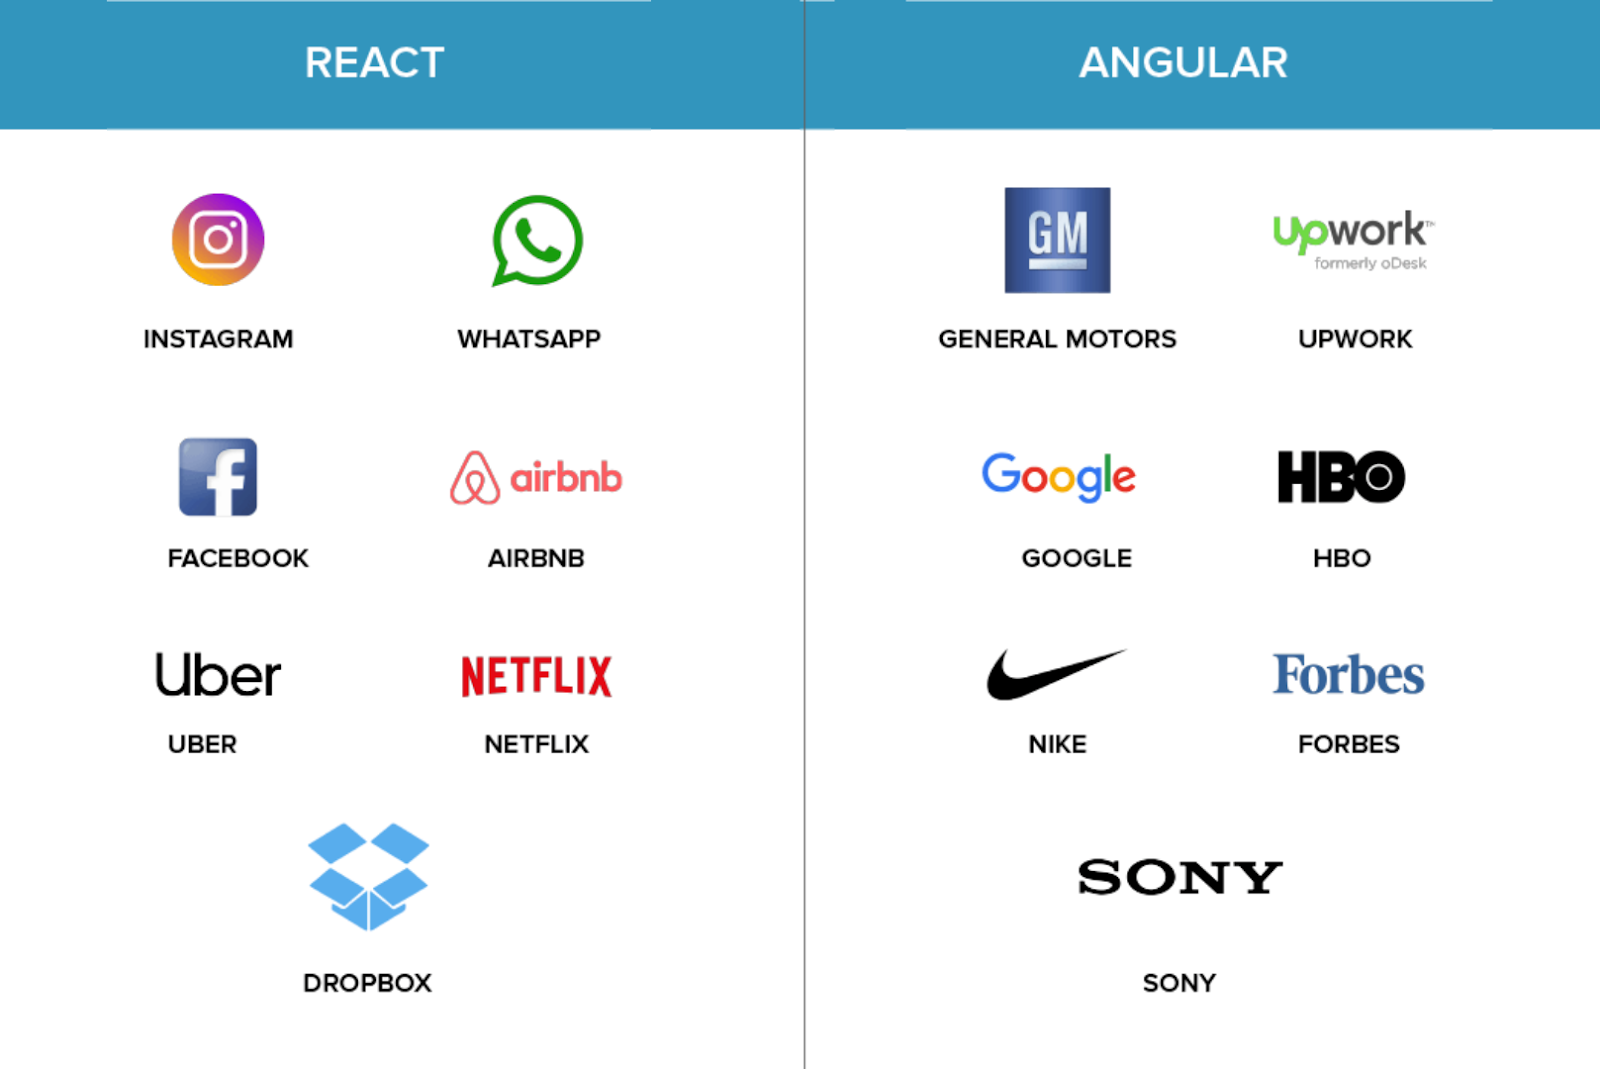 react vs angular companies